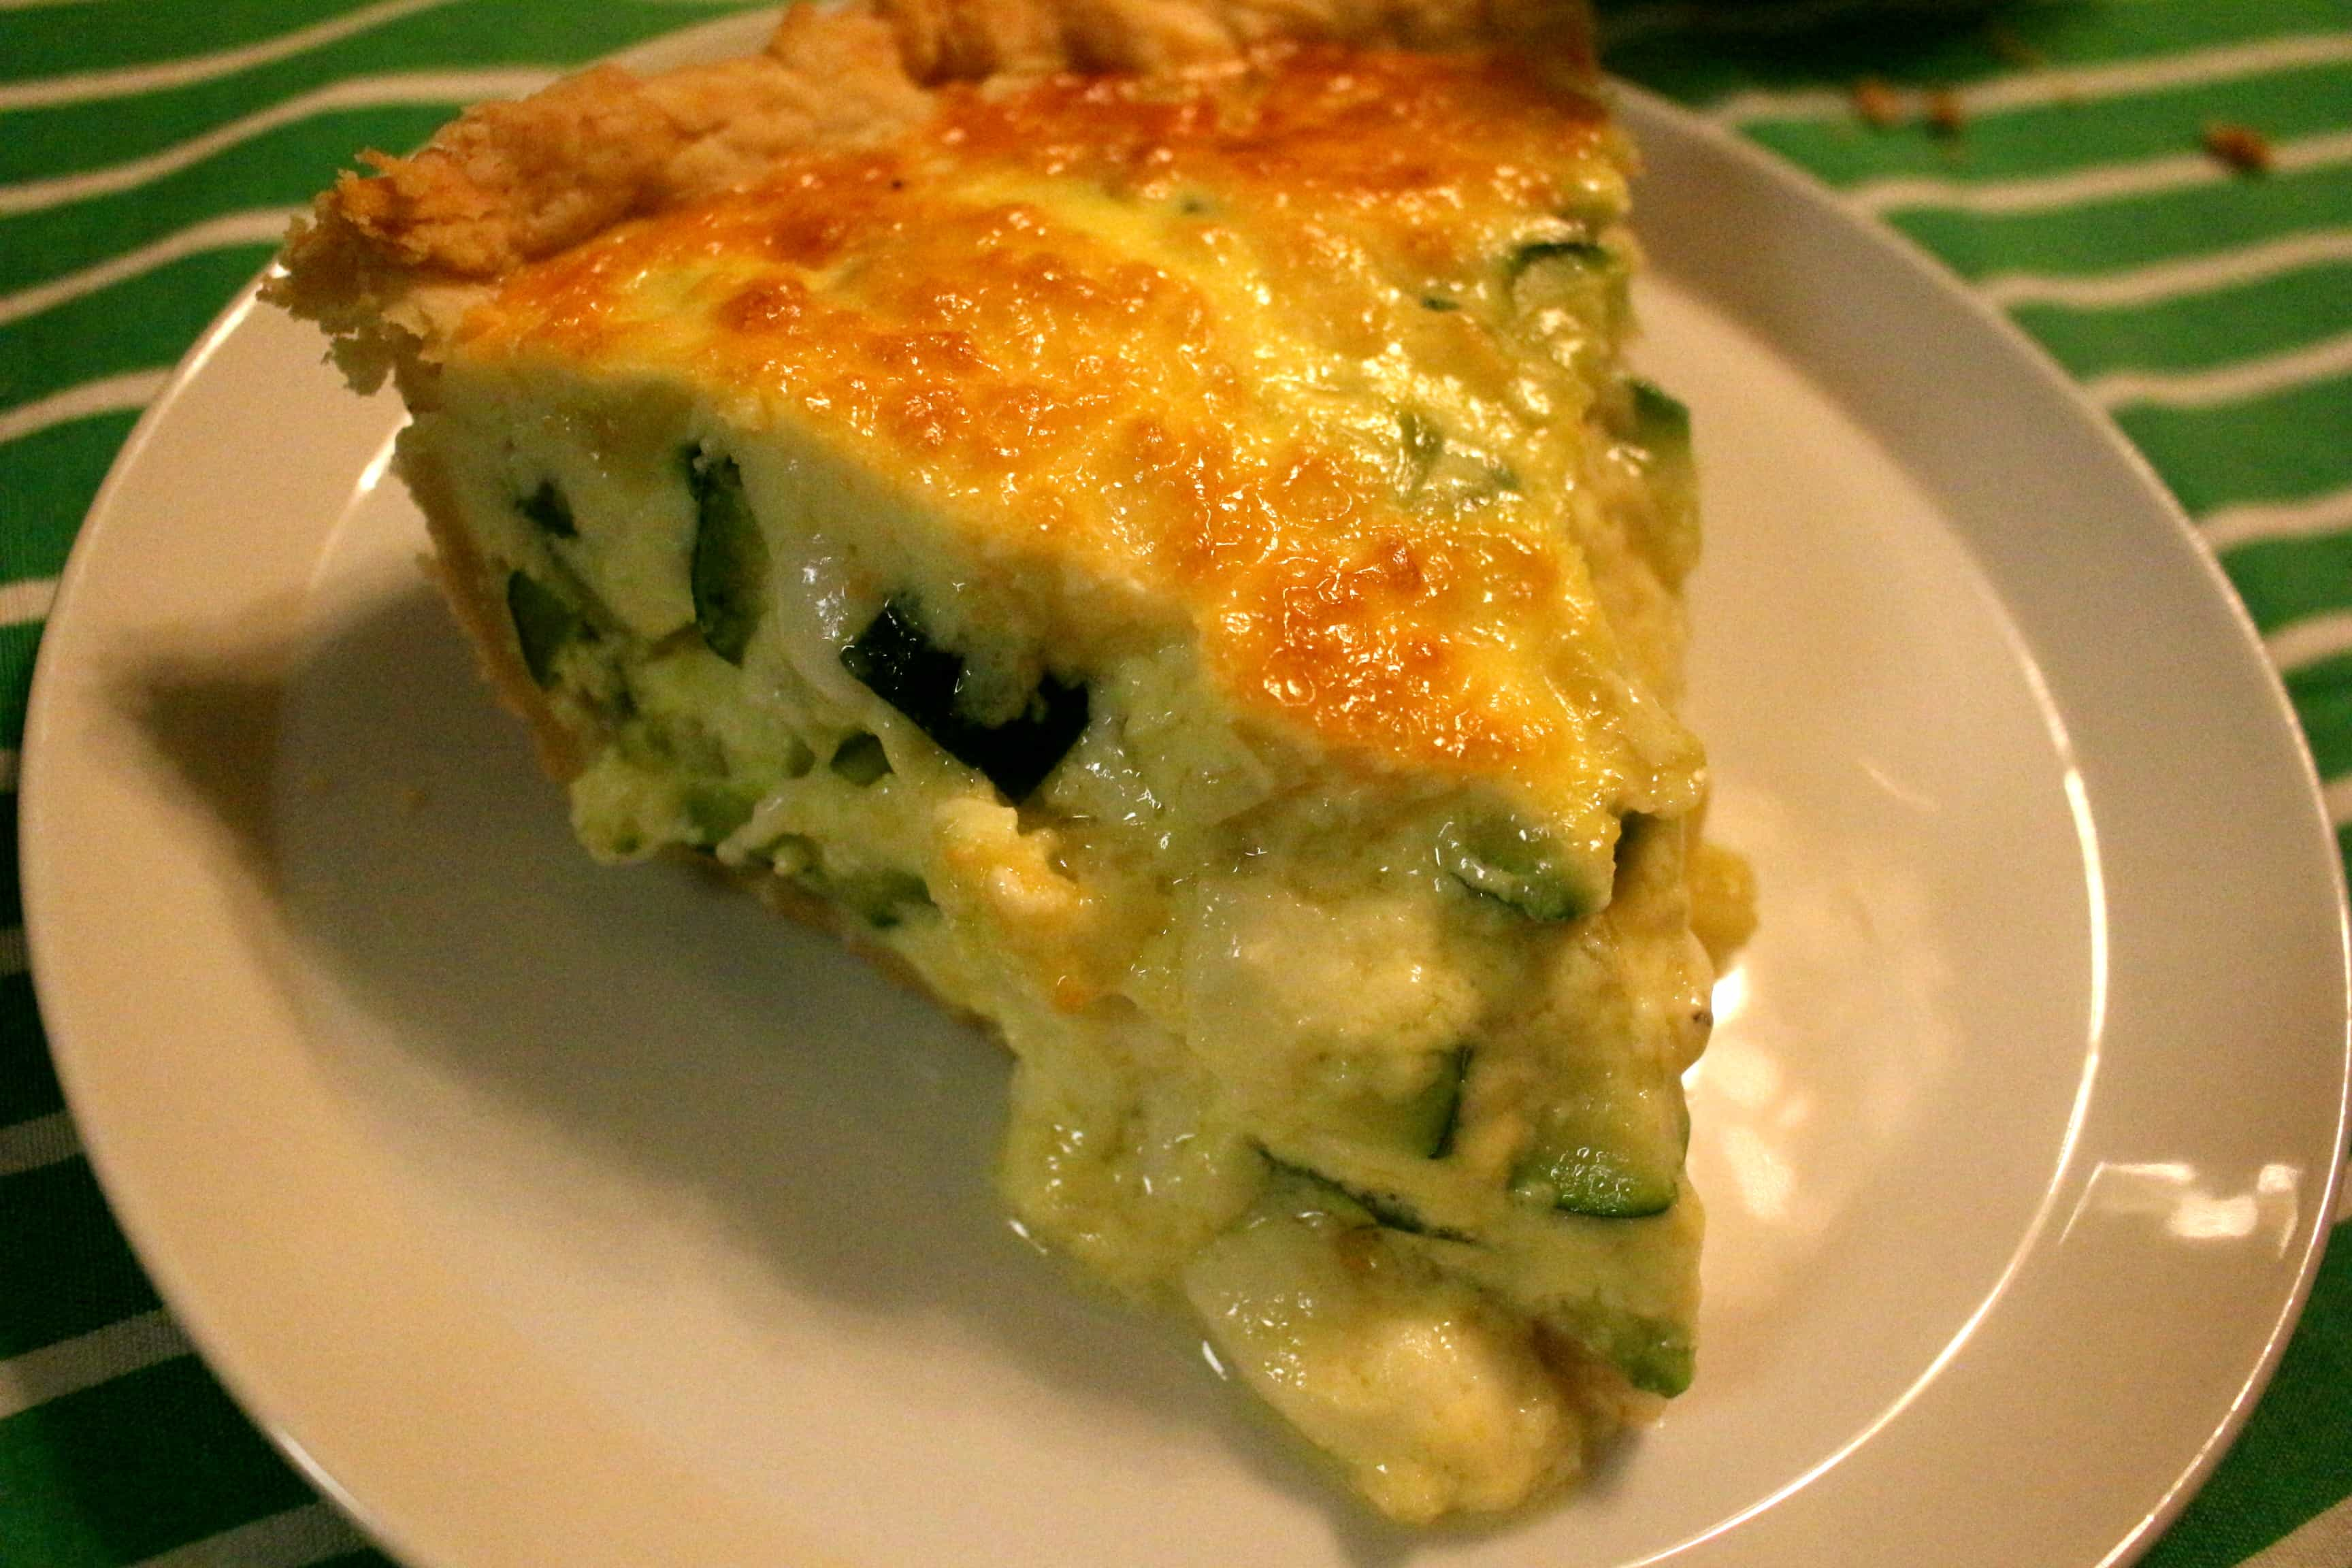 Zucchini and Goat Cheese Quiche with Parmesan Crust